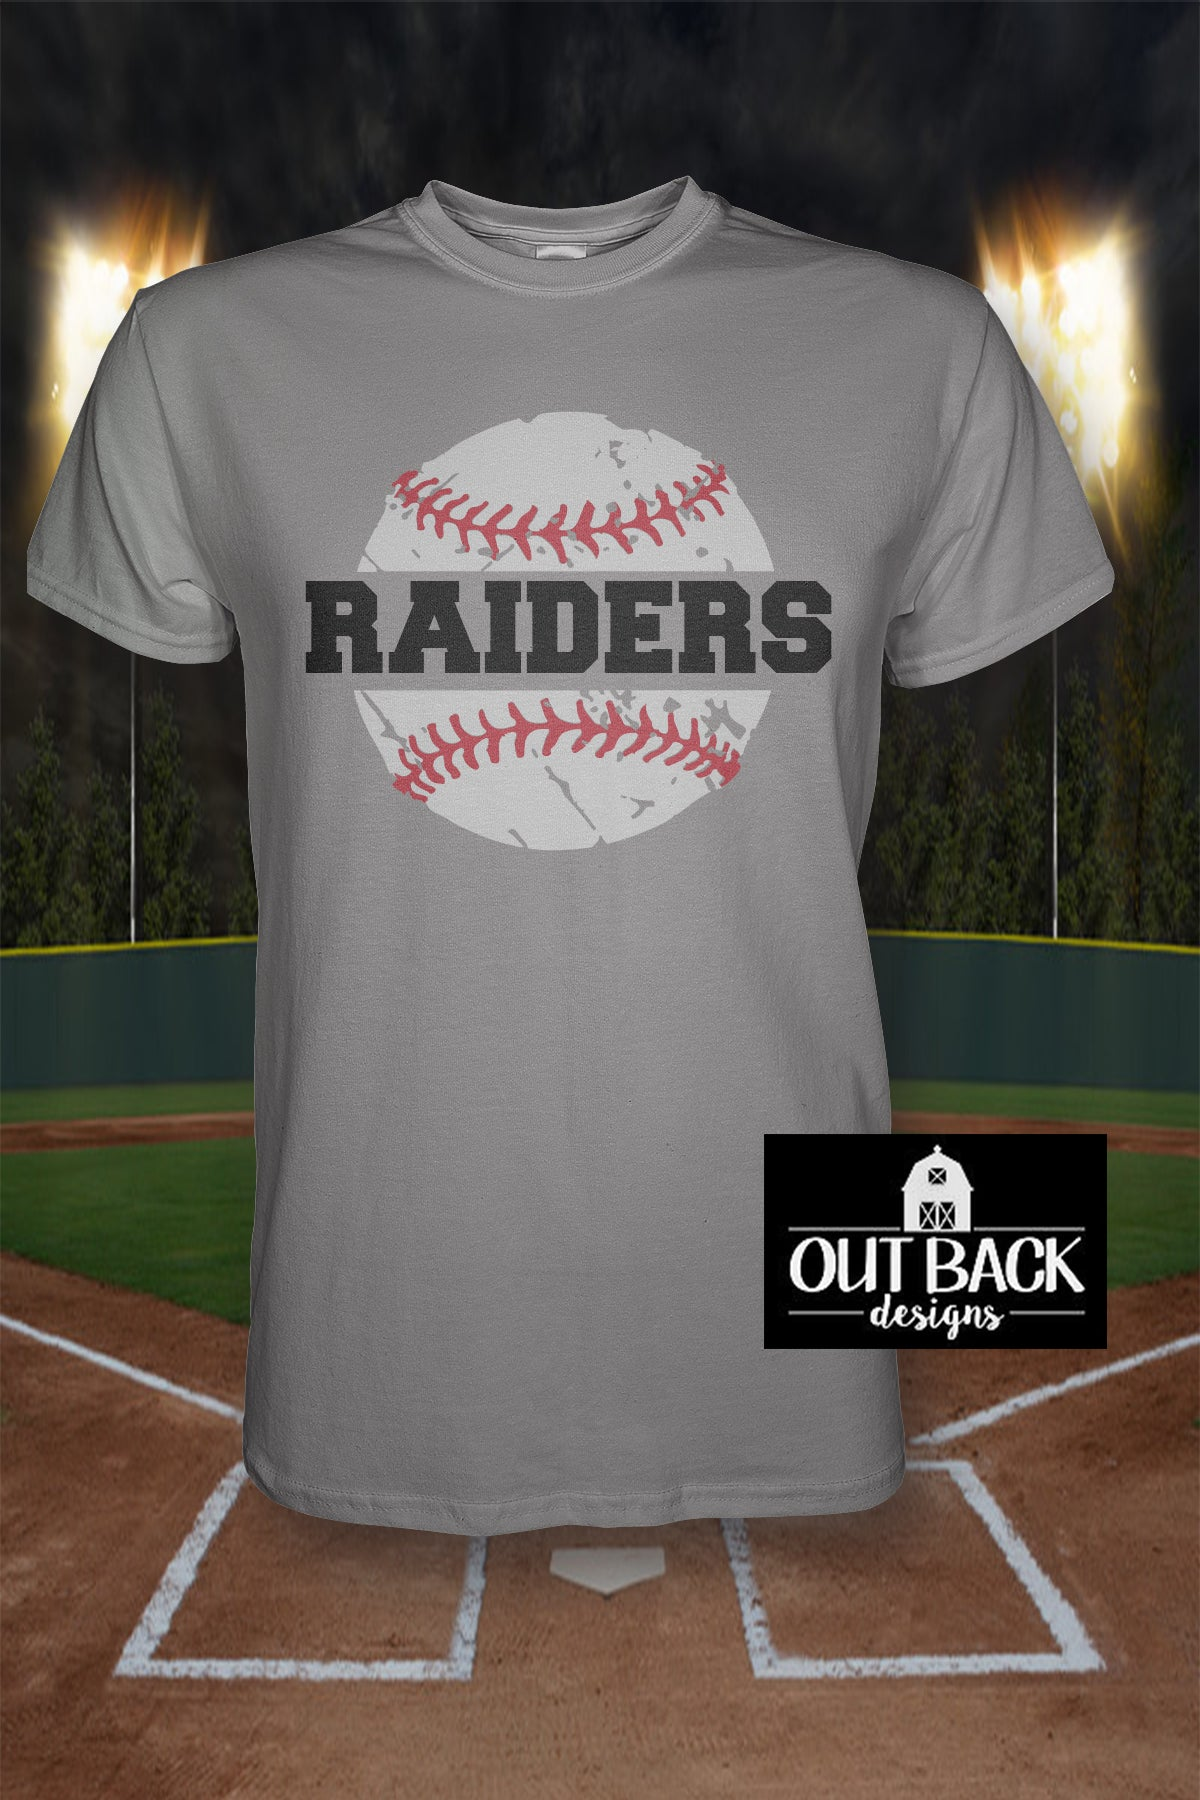 Split Baseball Softball With Team Name Vinyl T Shirt Out